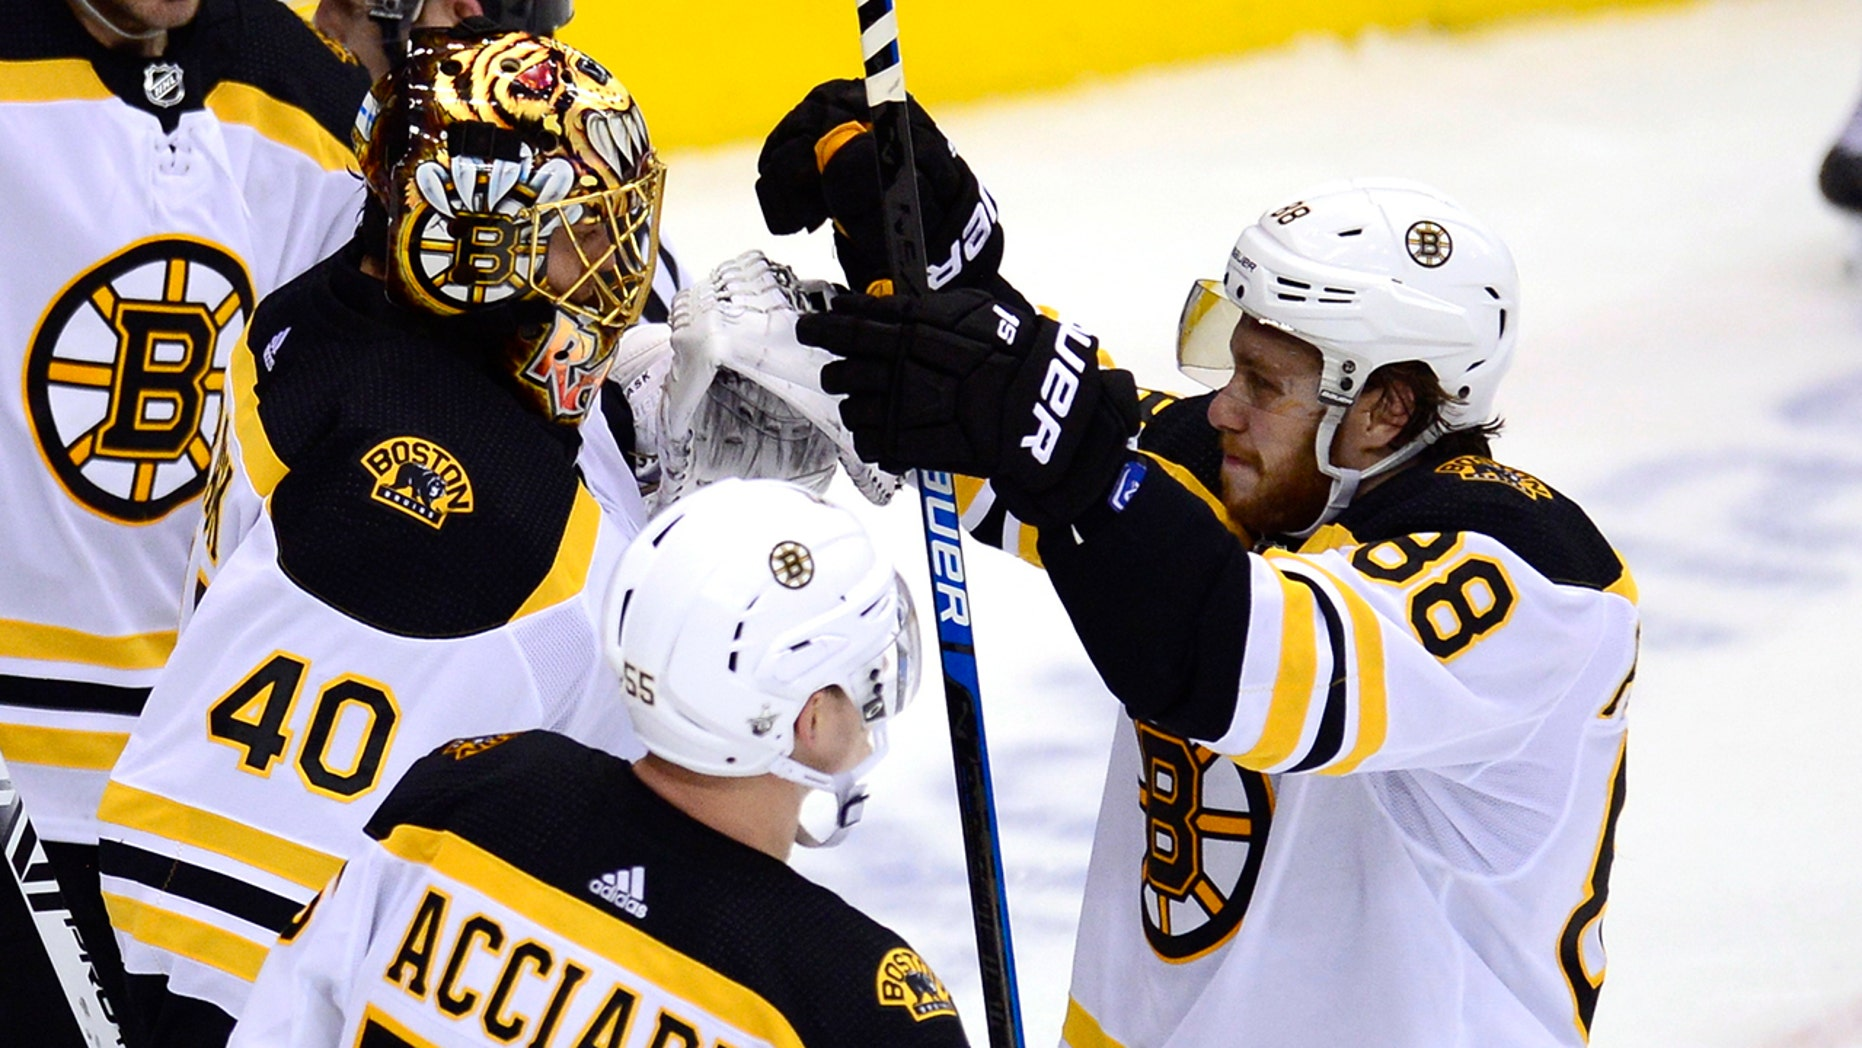 Marchand helps Bruins beat Maple Leafs 4-2 to force Game 7 ...Bruins News